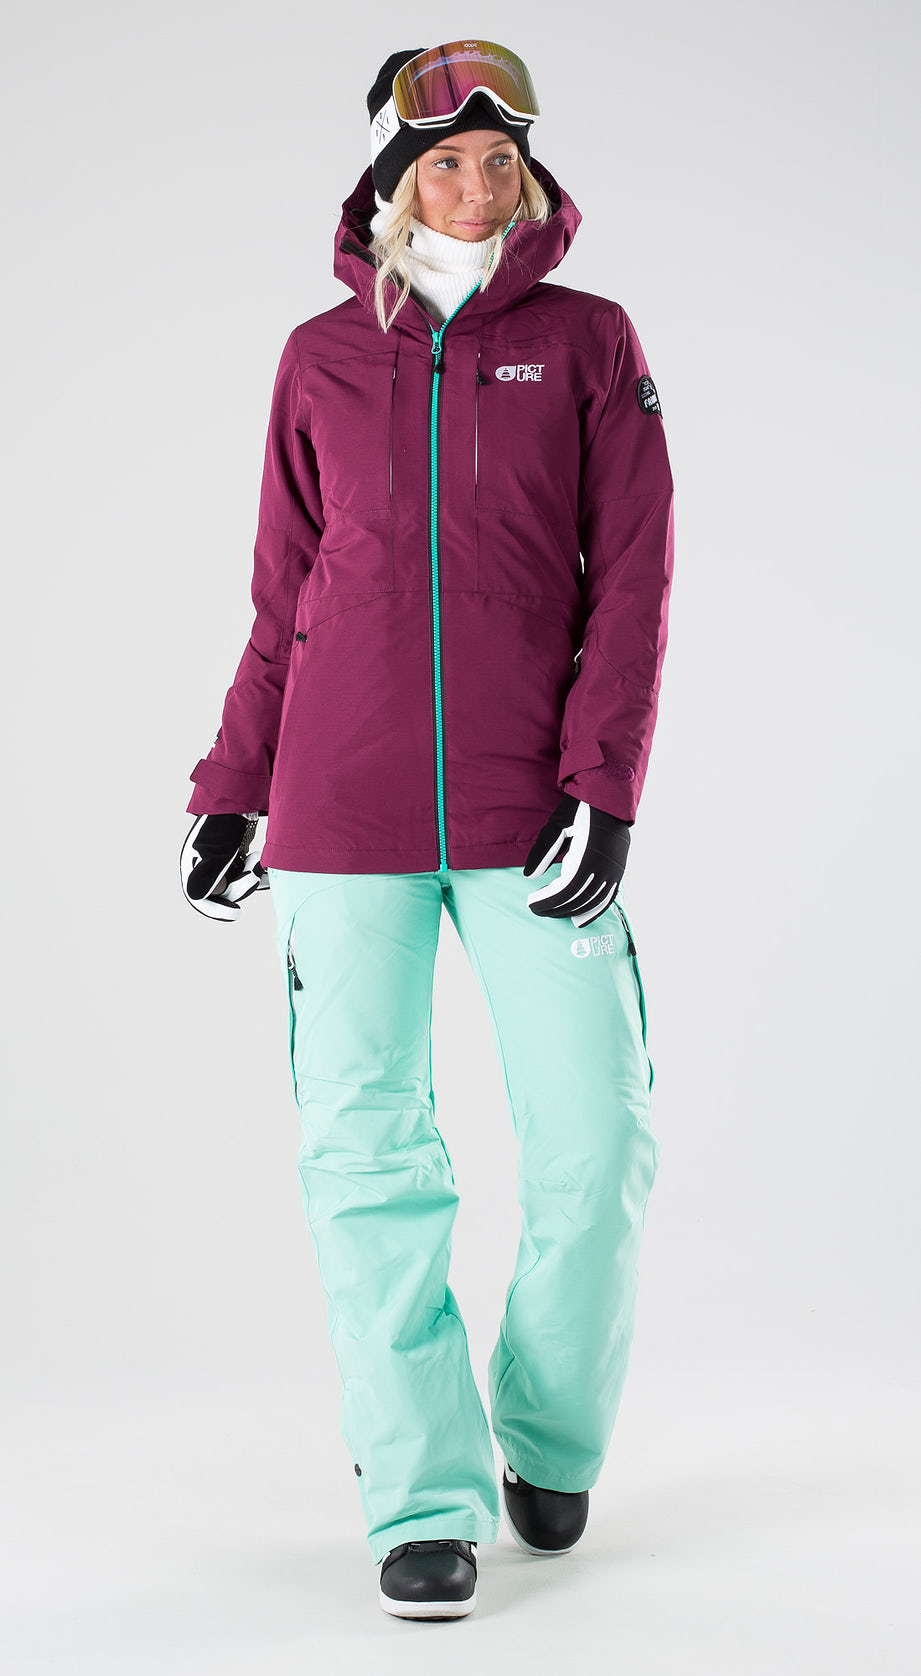 Picture Apply Raspberry Snowboard clothing Multi